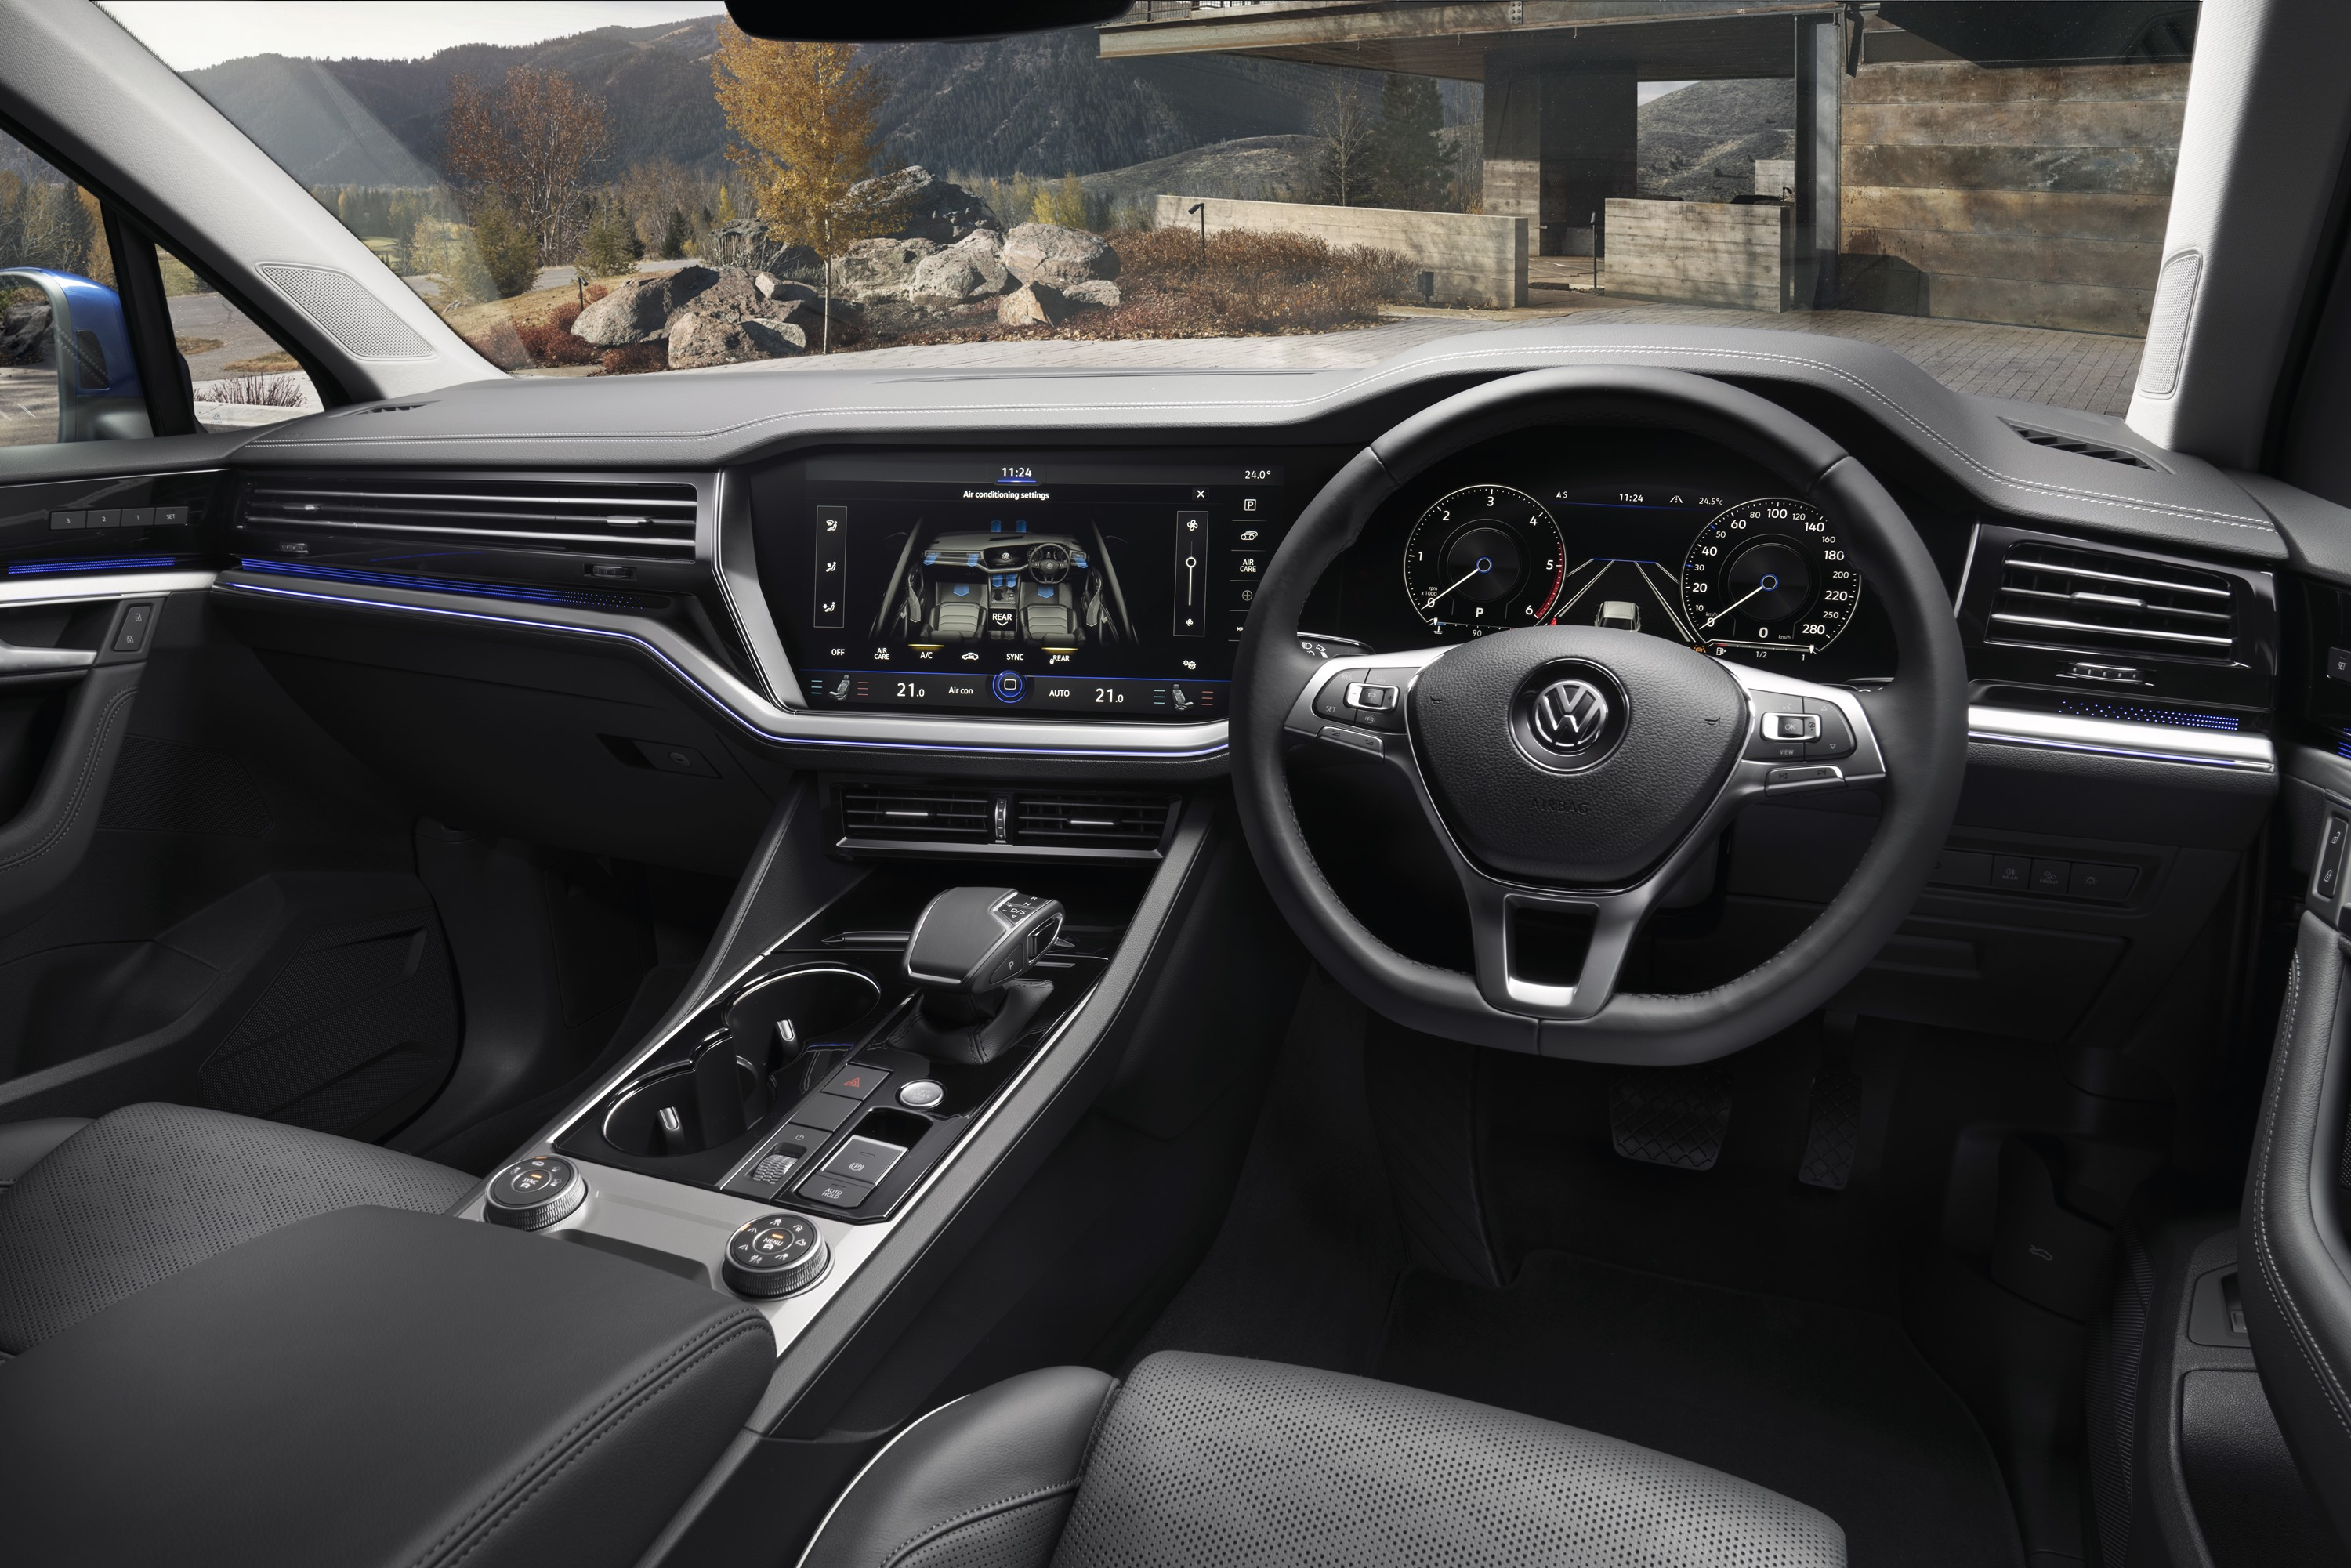 2019 VW Touareg Launch Edition 19 interior 2